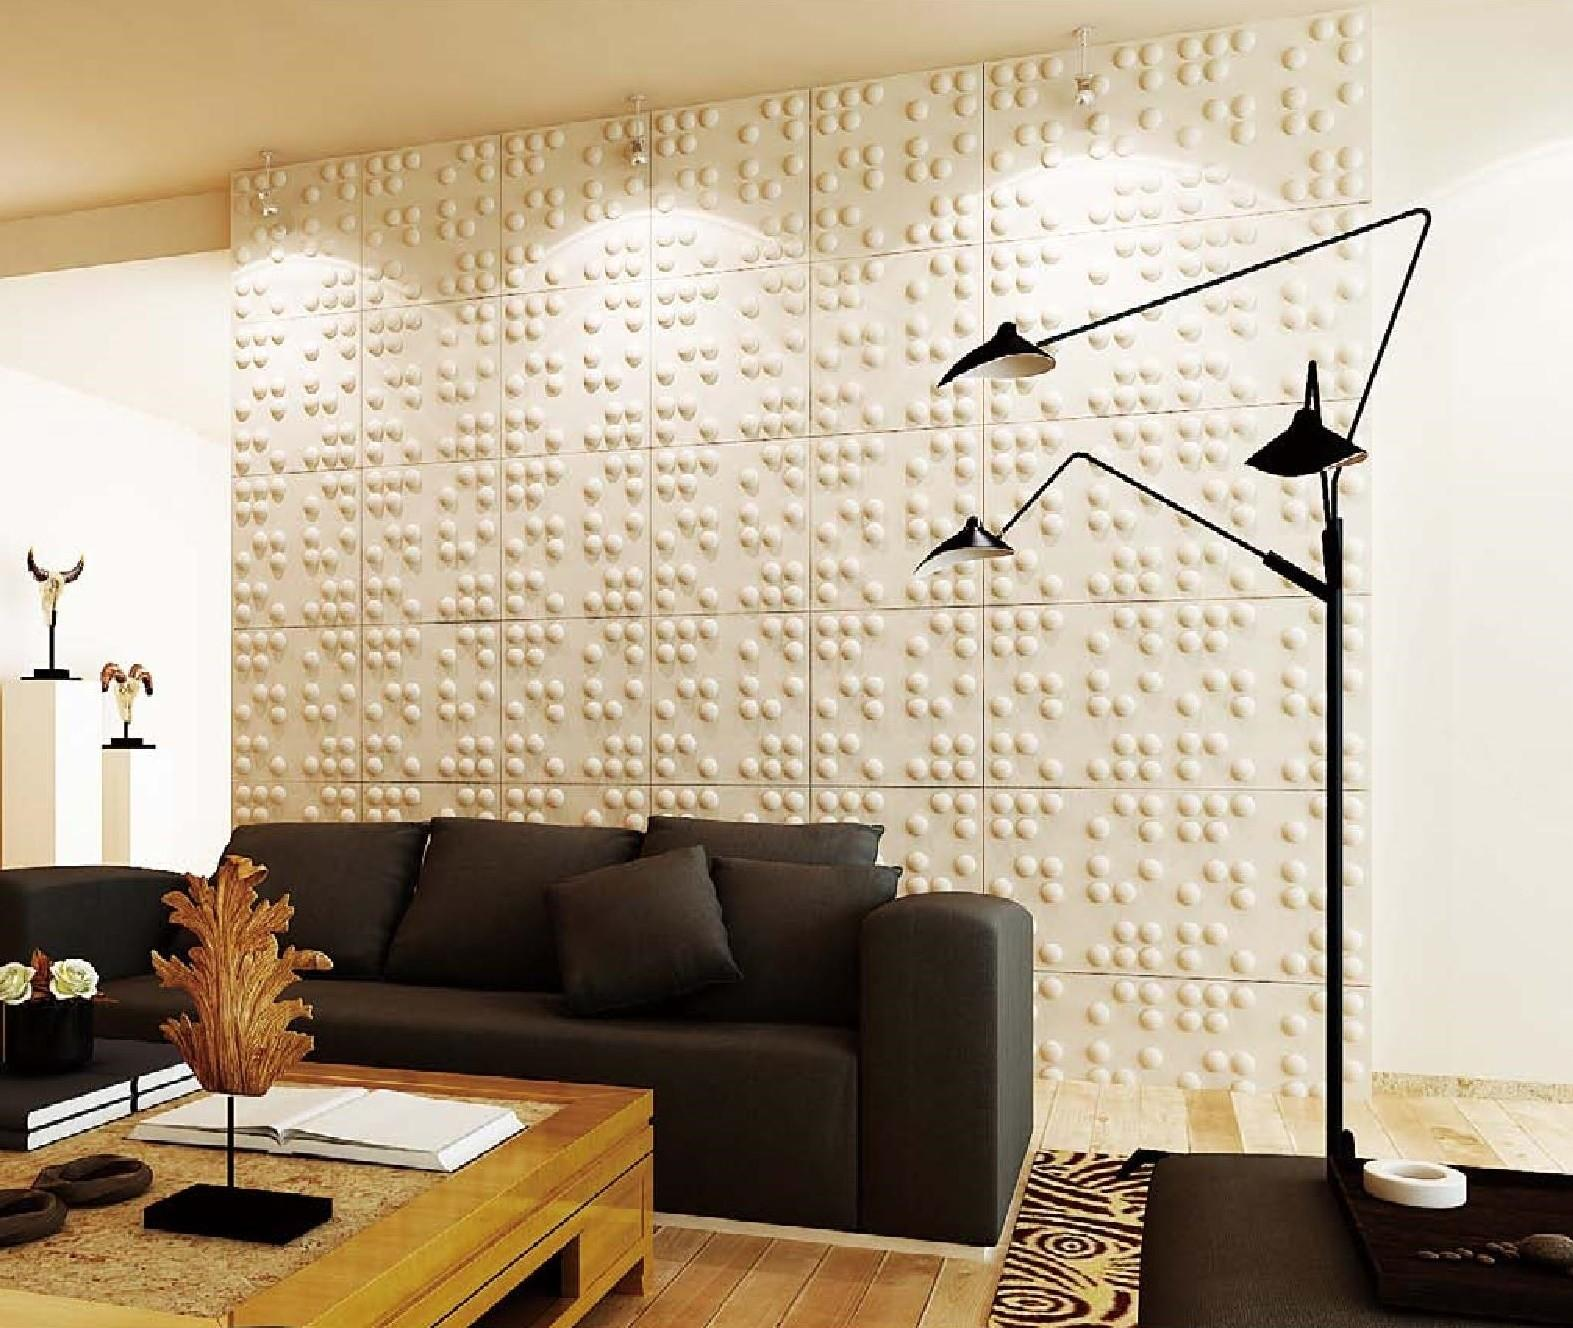 Natural Bamboo Wall Panel Decorative Ceiling Tiles